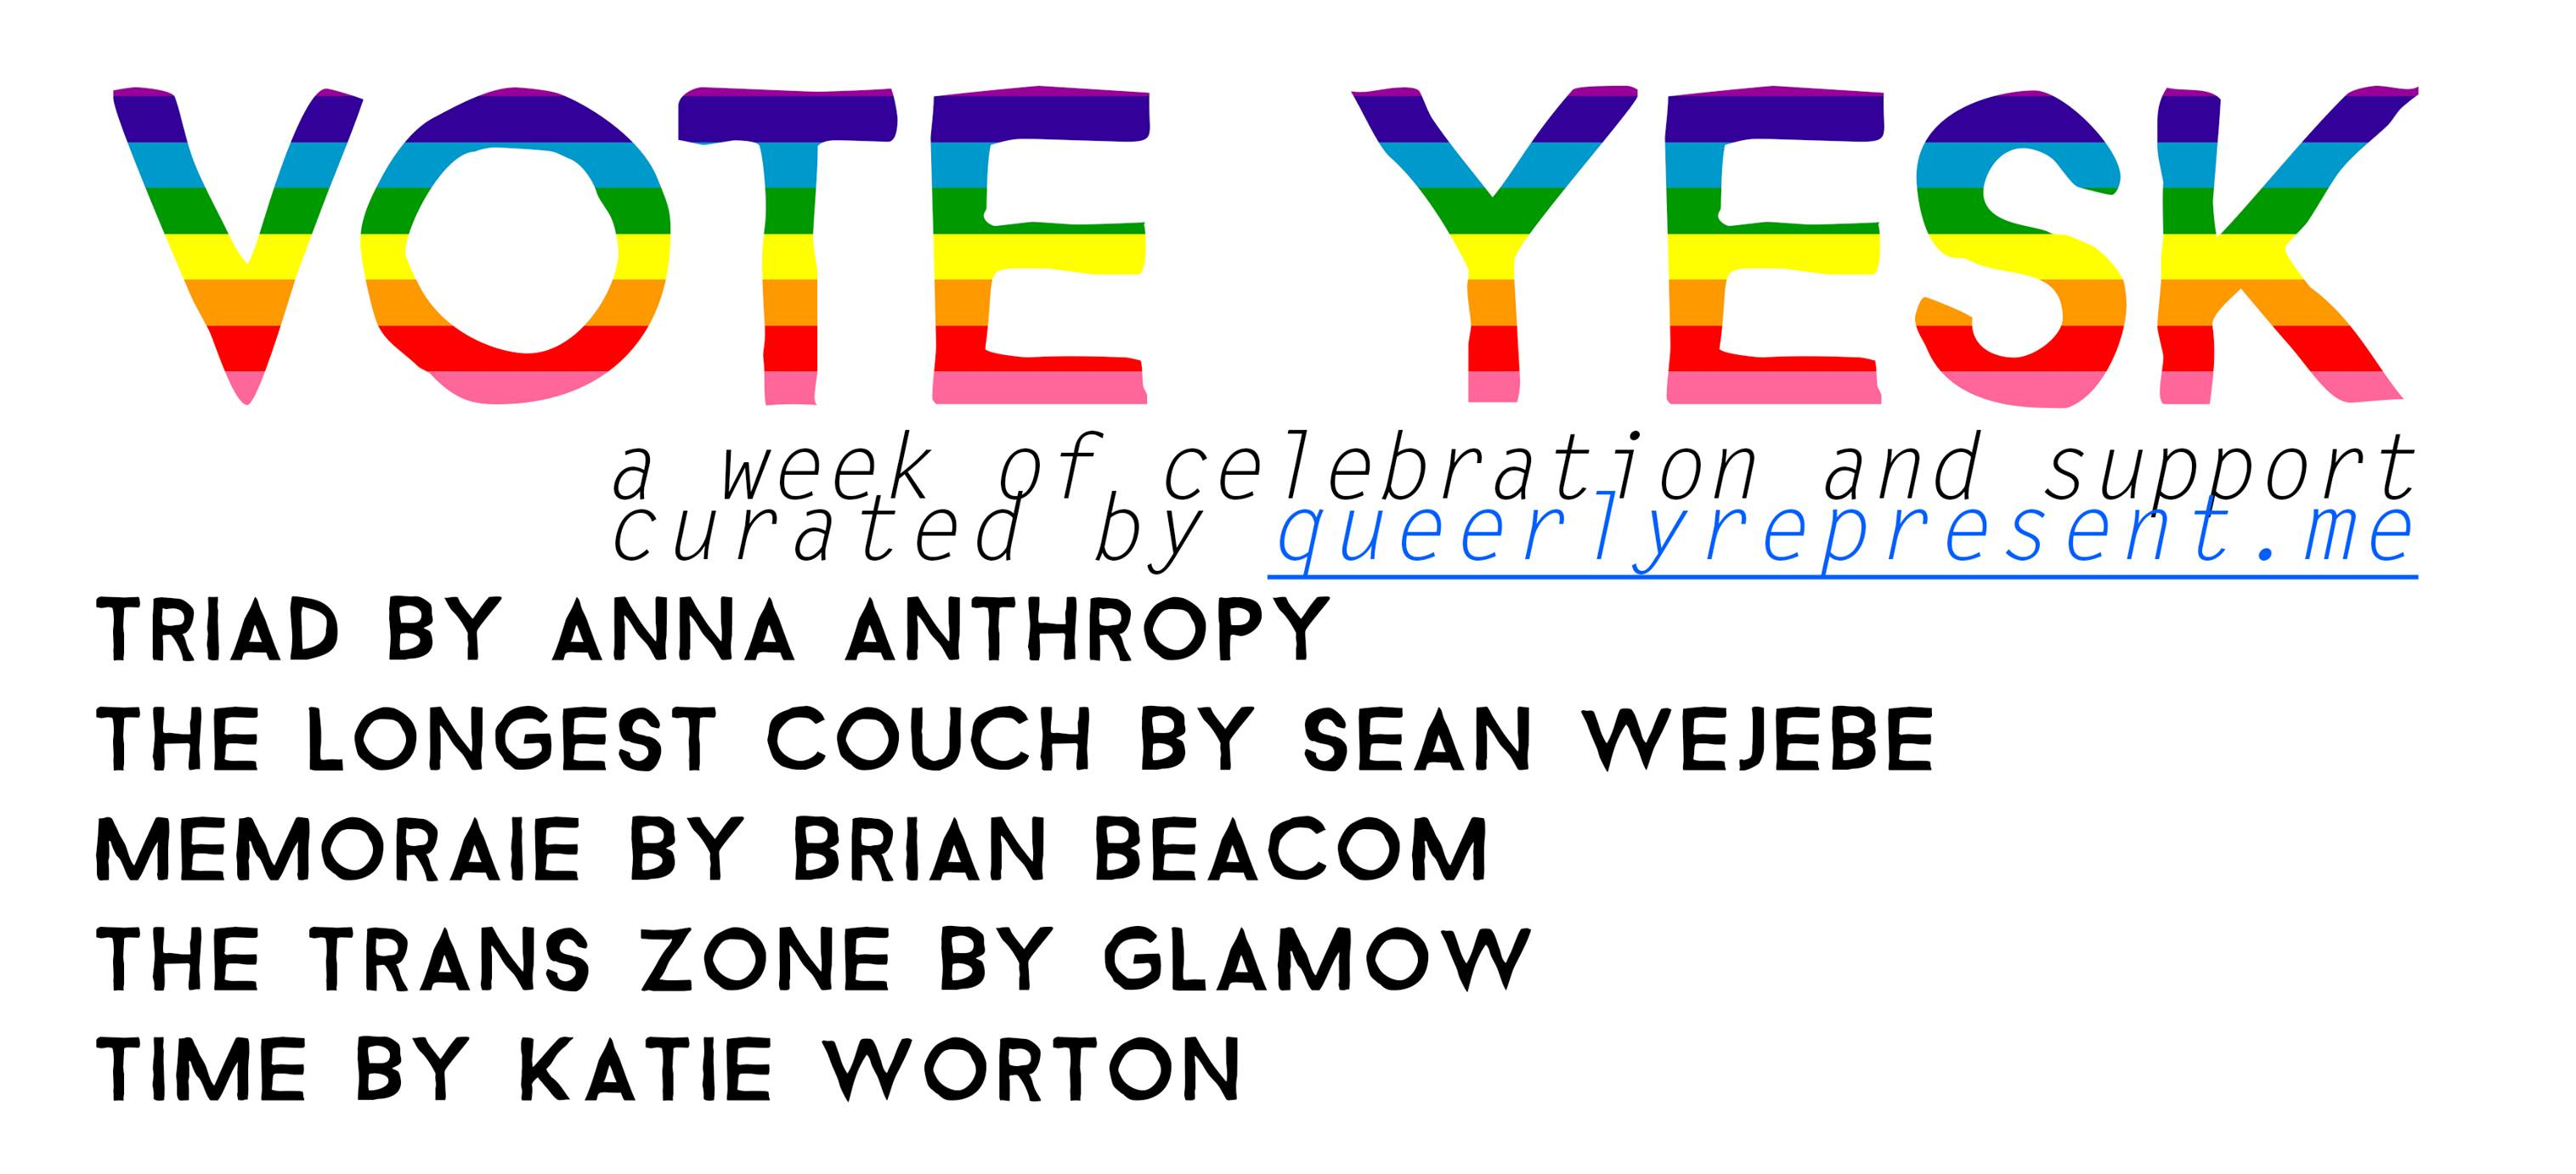 Vote Yes K logo. Text reading 'A week of celebration and support curated by Queerly Represent Me. Triad by Anna Anthropy. The Longest Couch by Sean Wejebe. Memoraie by Brian Beacom. The Trans Zone by Glamow. Time by Katie Worton.'